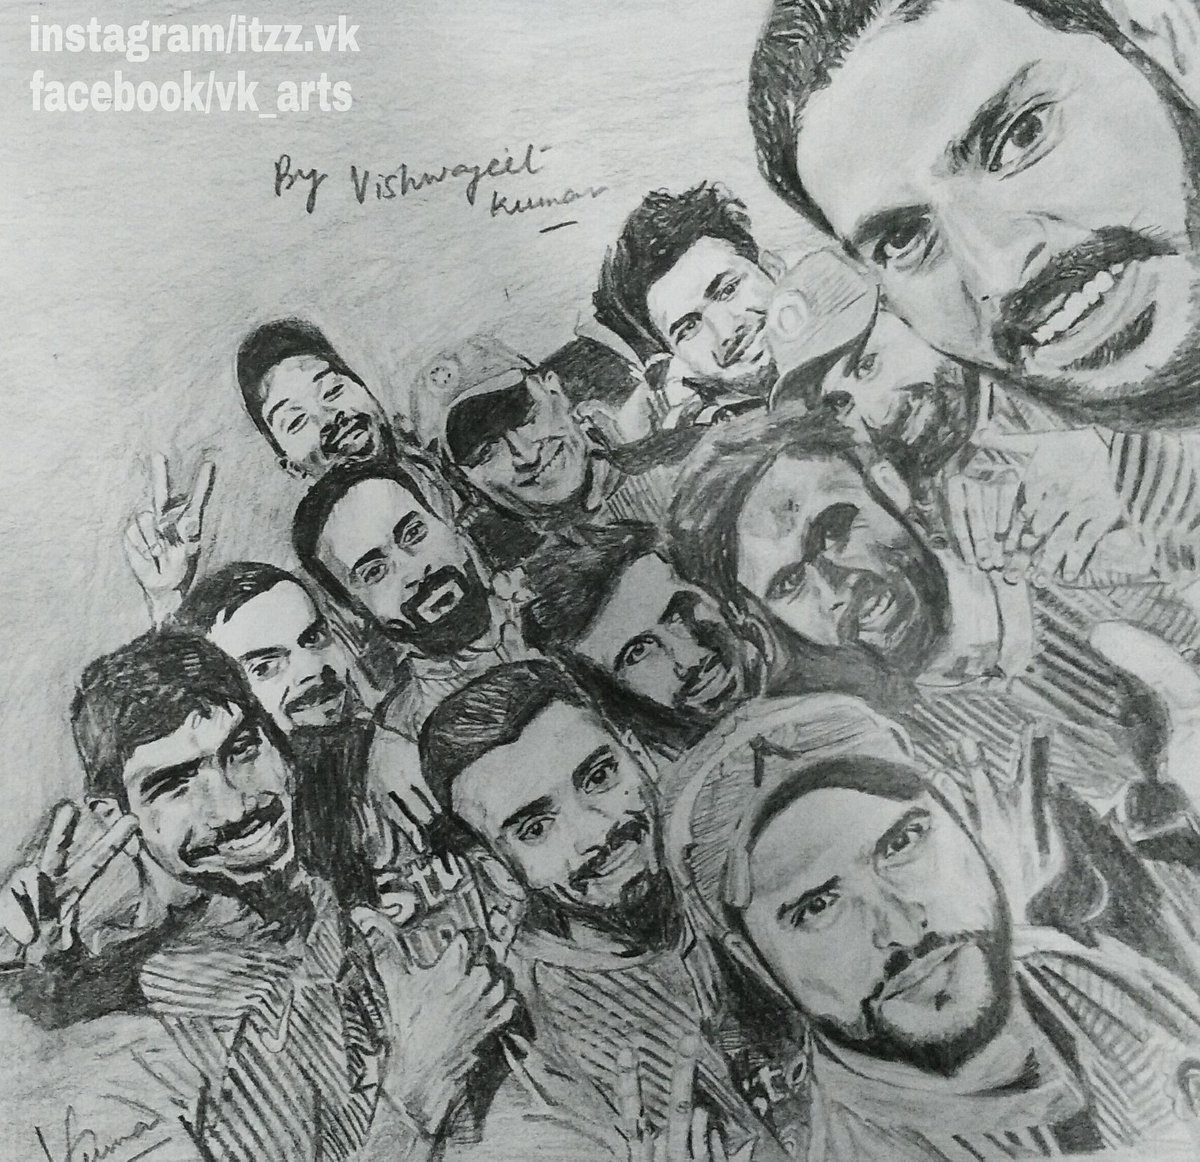 Vk arts on twitter victory✌ sketch yuvrajsingh viratkohli msdhoni sureshraina n luv u all proud selfie teamindia indveng t20 cricket sketch